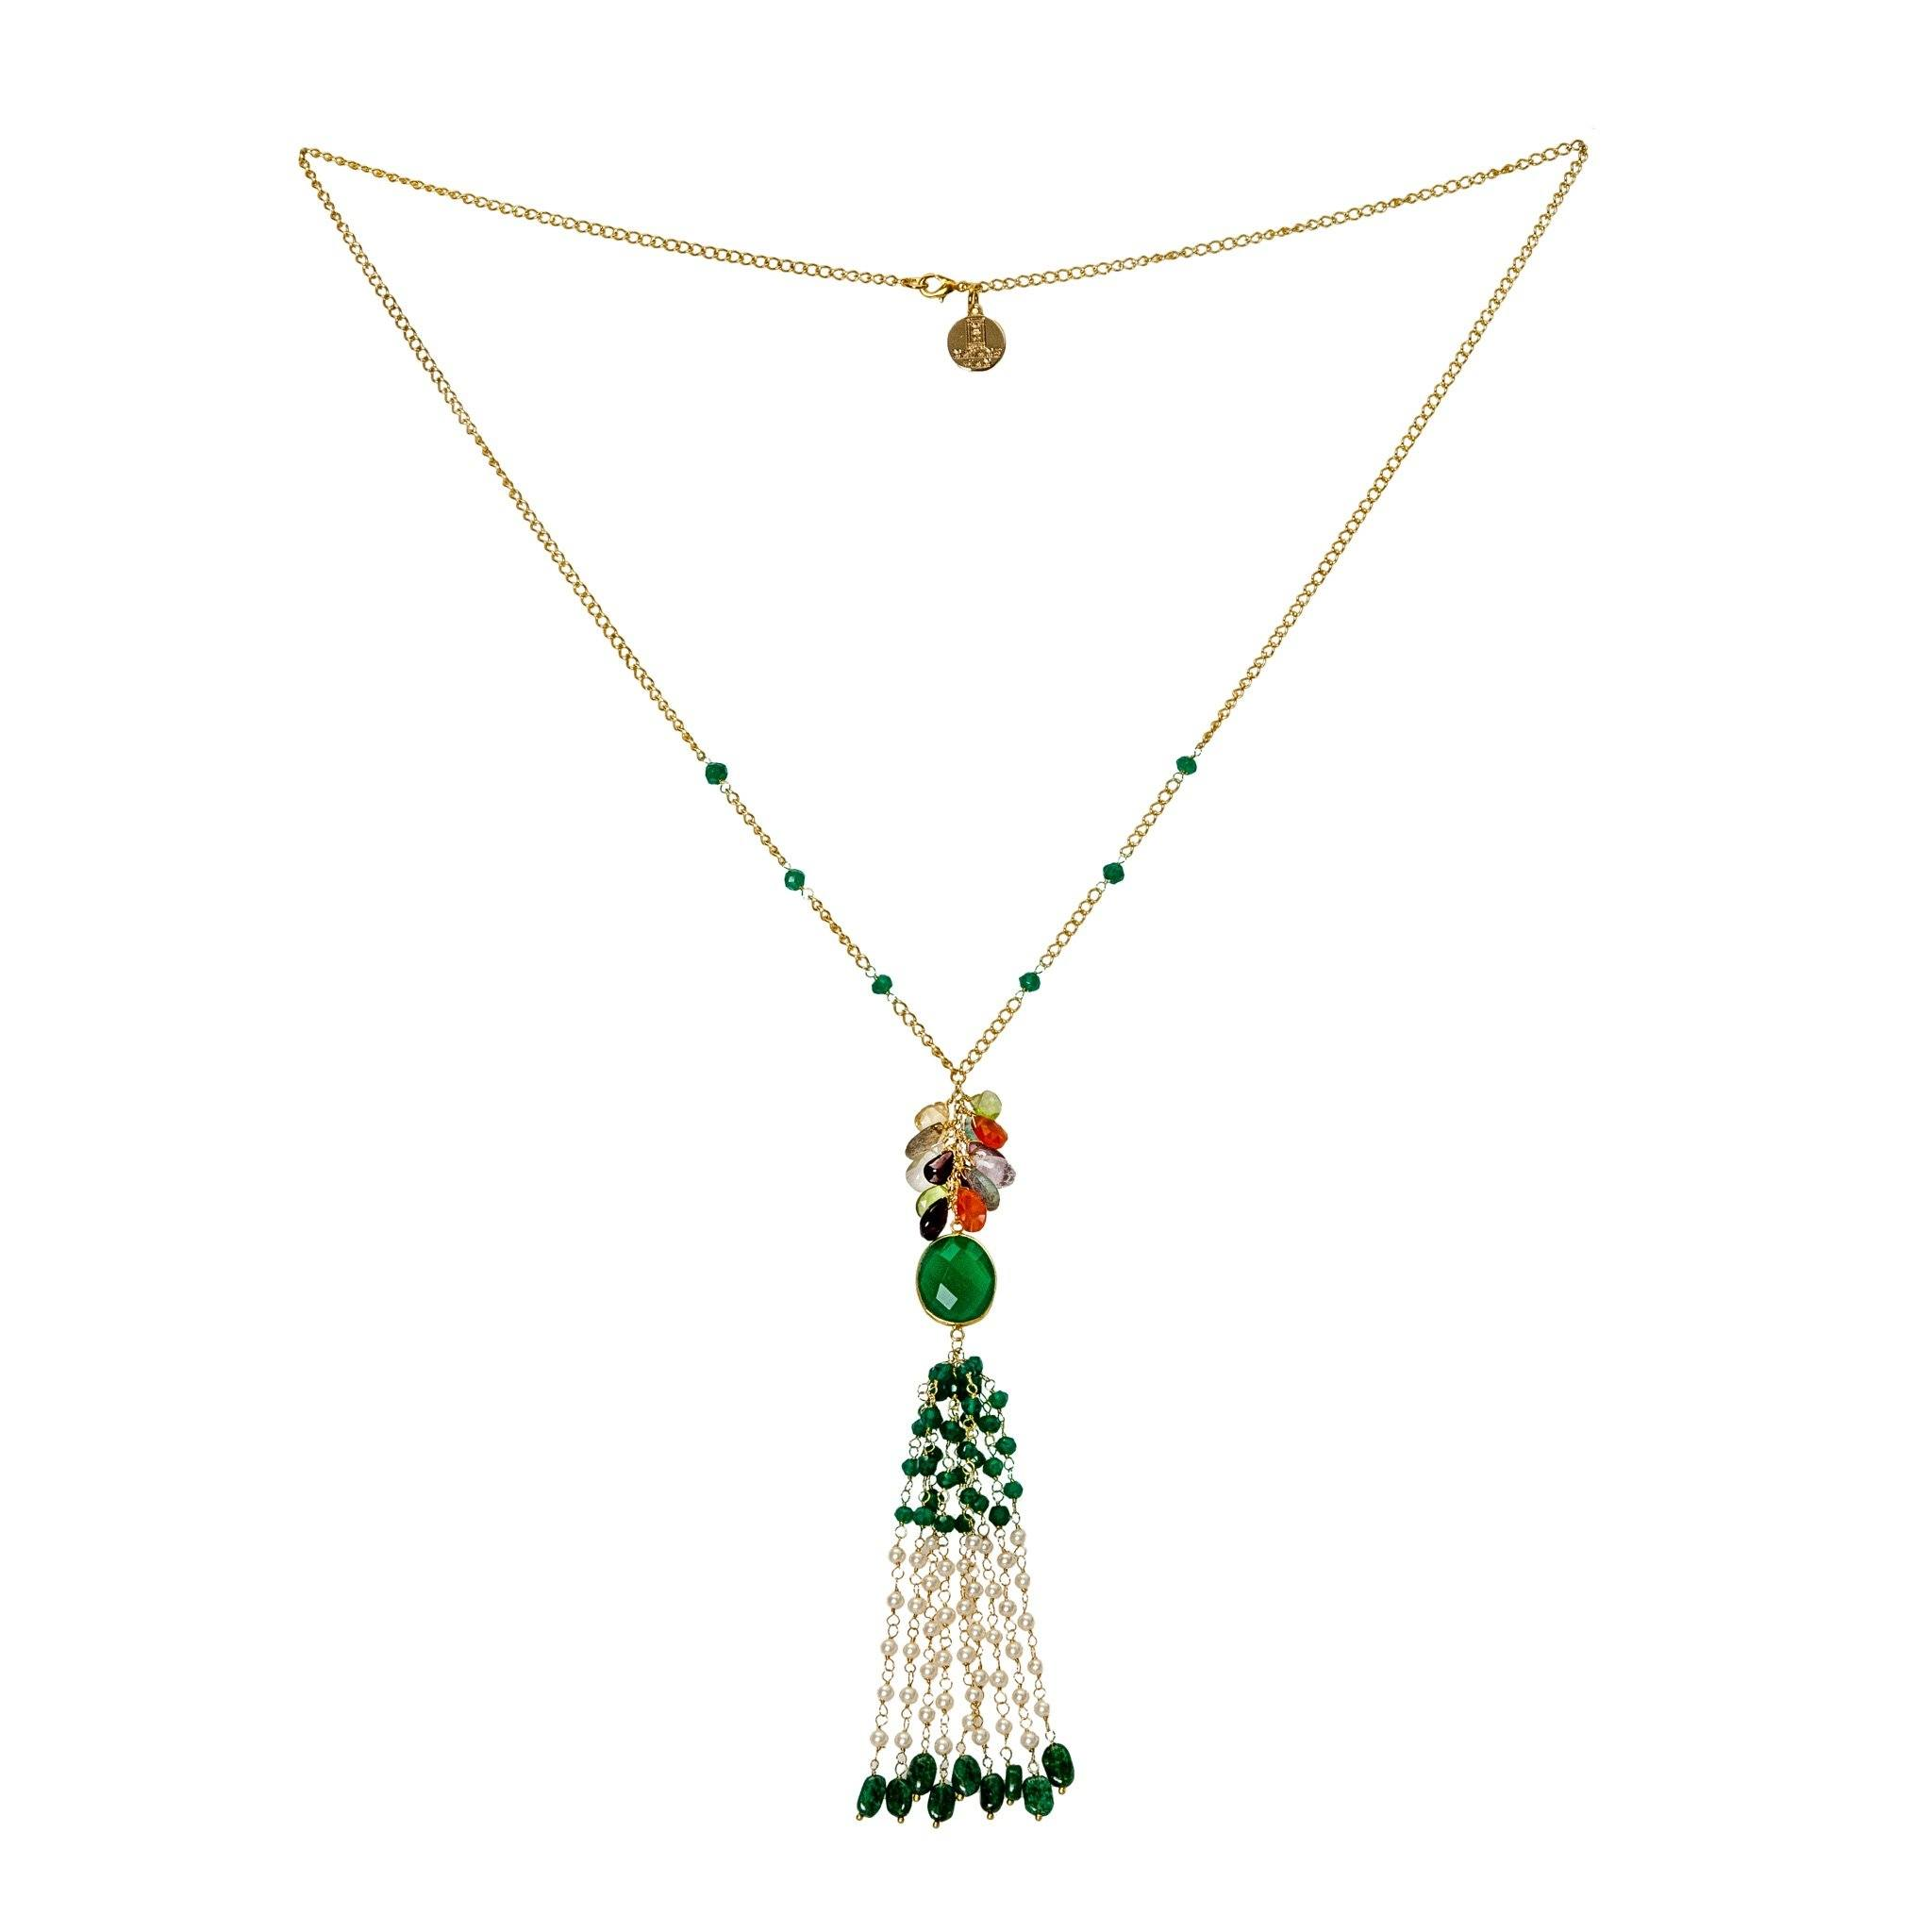 MAY green onyx tassel necklace